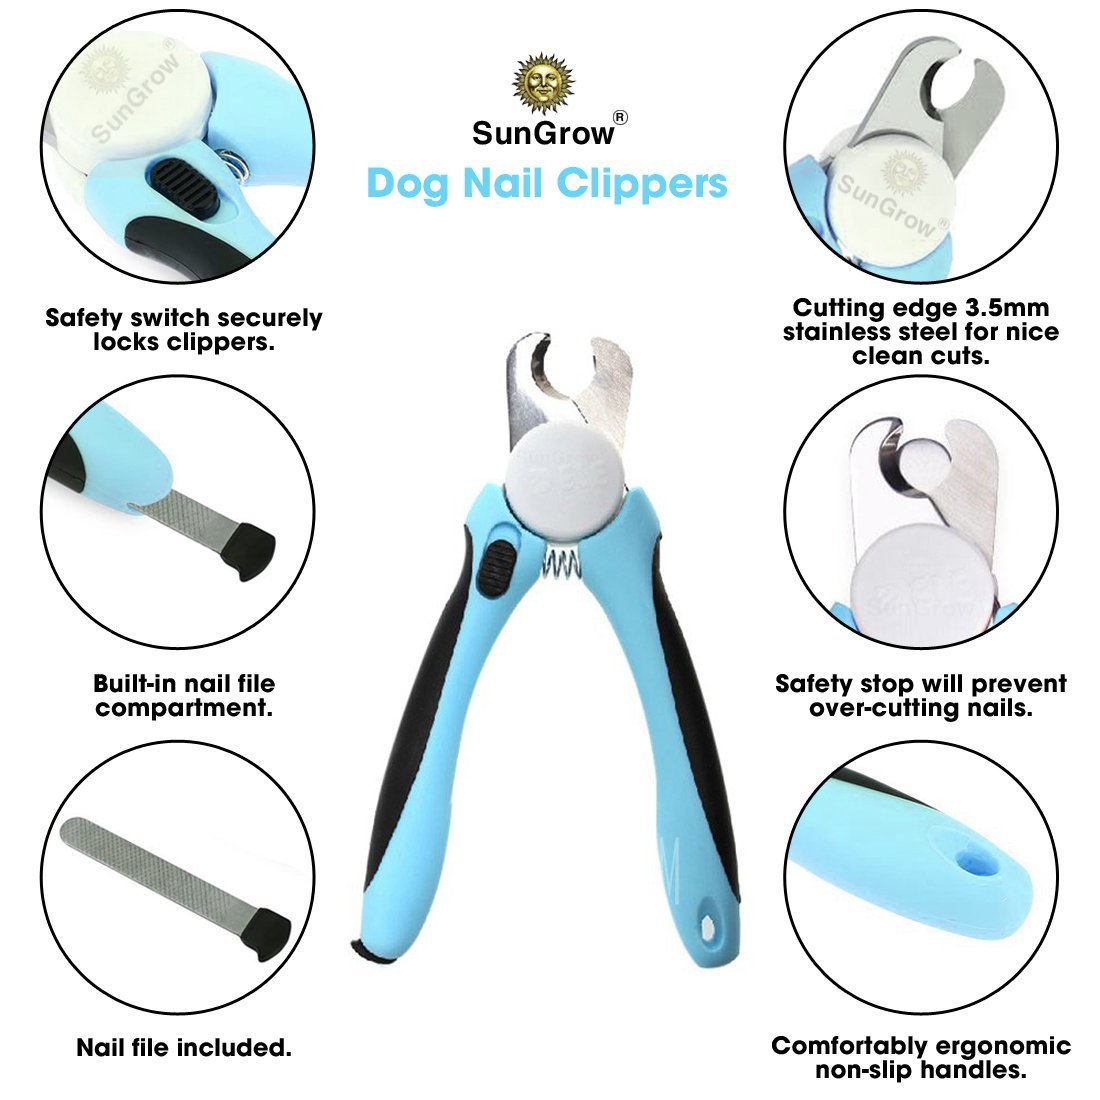 Amazon No pain Dog Nail Clipper & Trimmer Safety Switch to